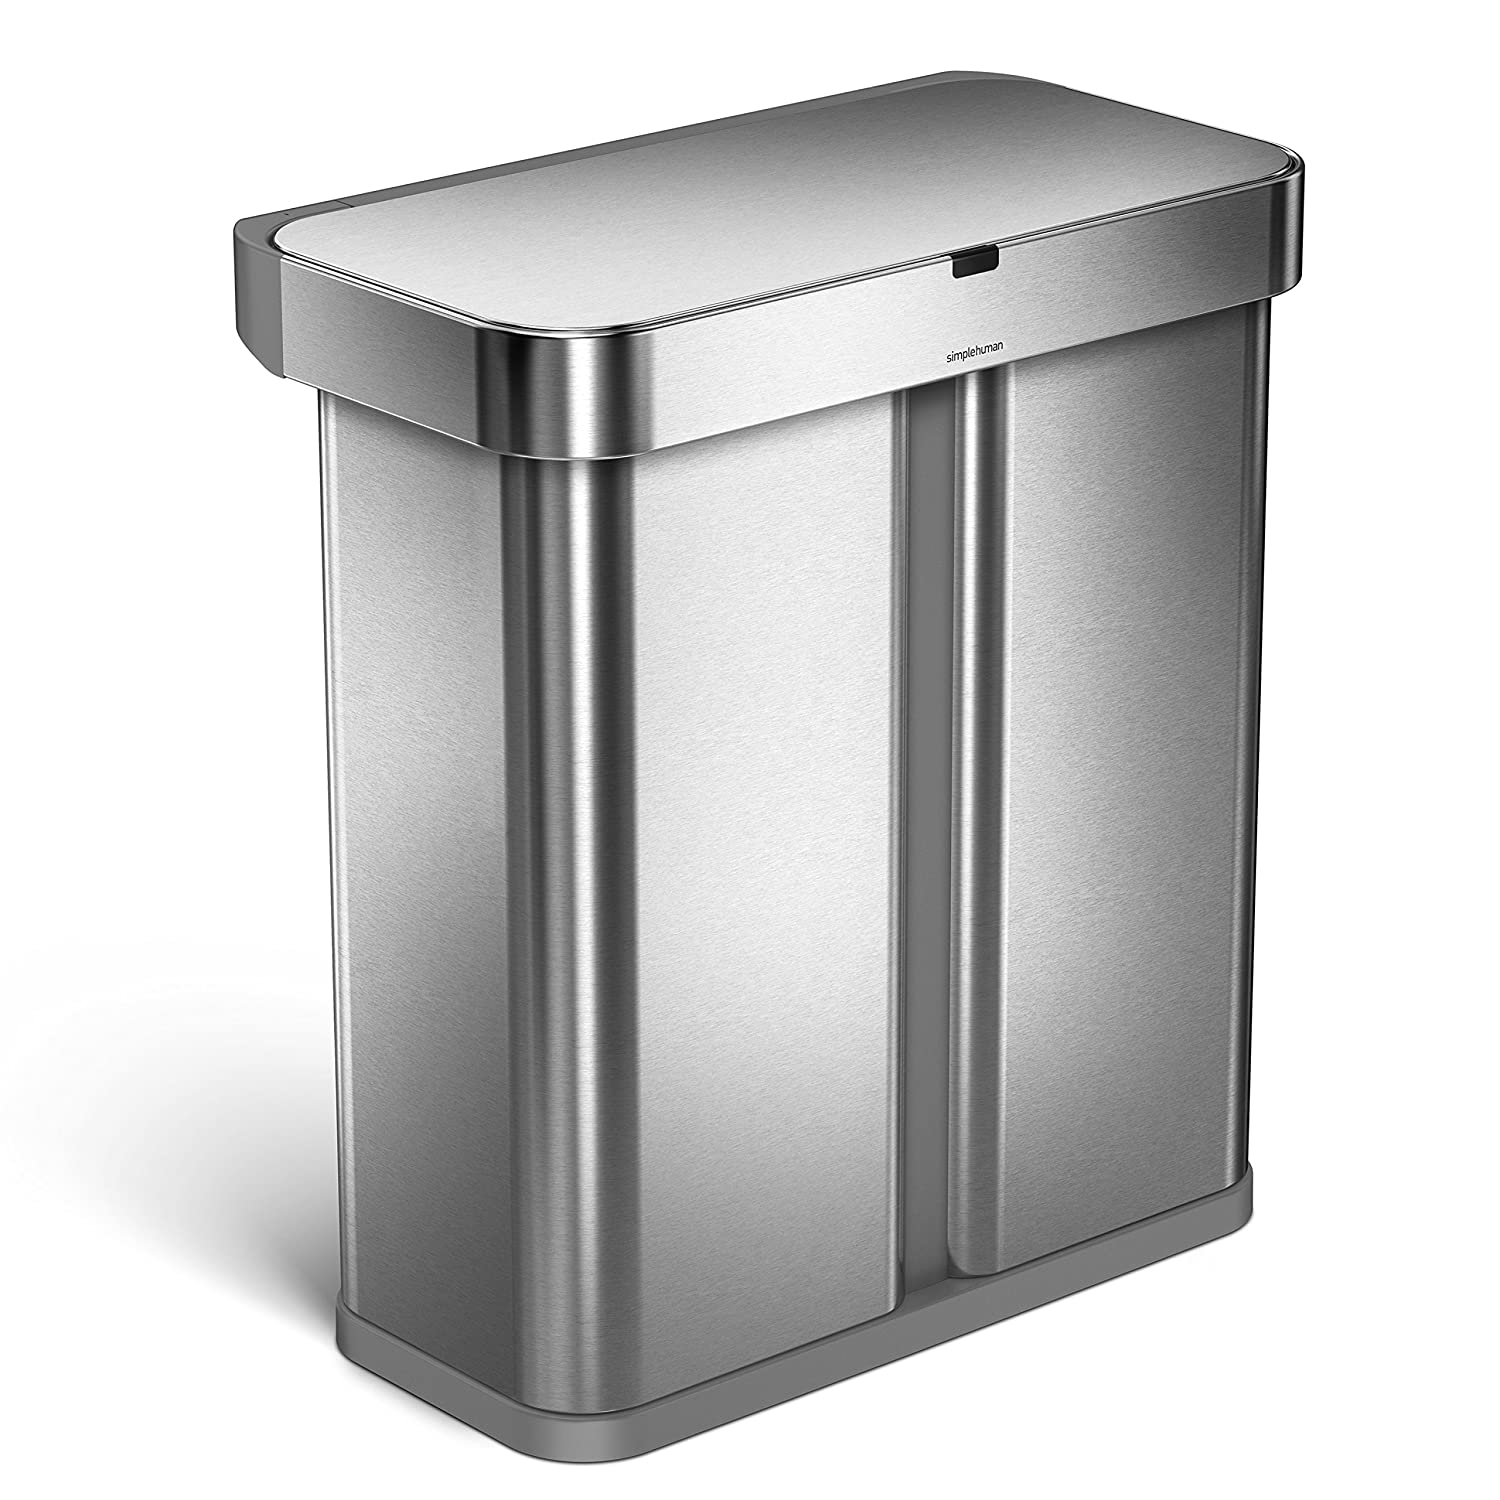 simplehuman 58L Dual Compartment Rectangular Sensor Trash Can with Voice  and Motion Sensor, Touch-